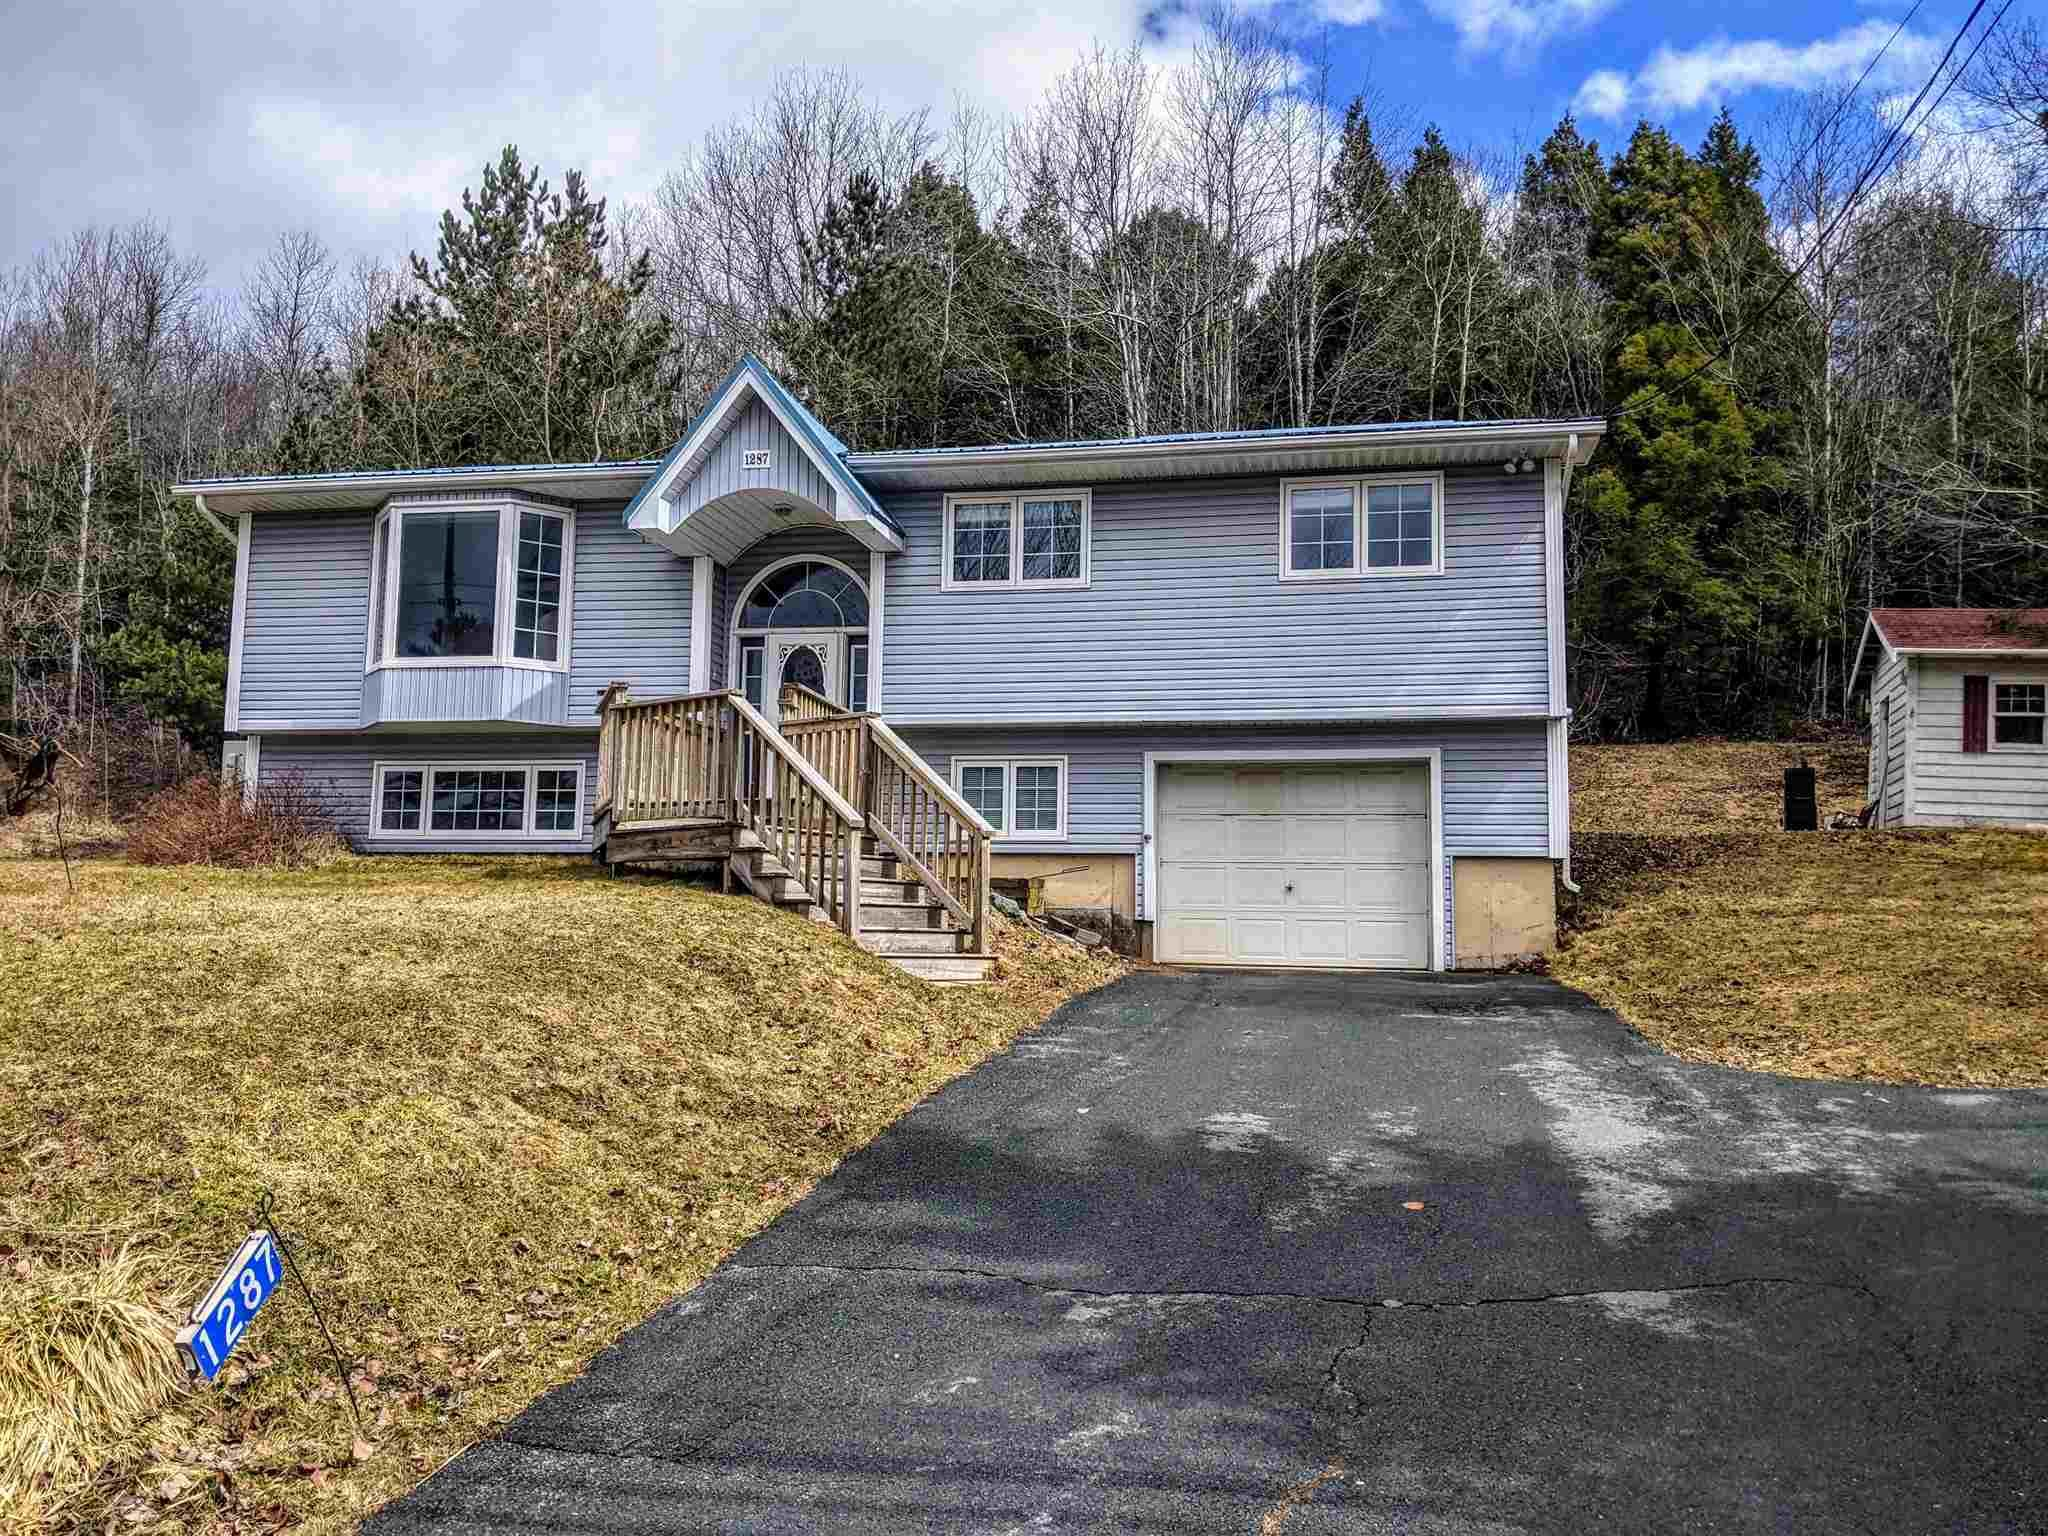 Main Photo: 1287 Beaver Bank Road in Beaver Bank: 26-Beaverbank, Upper Sackville Residential for sale (Halifax-Dartmouth)  : MLS®# 202106431